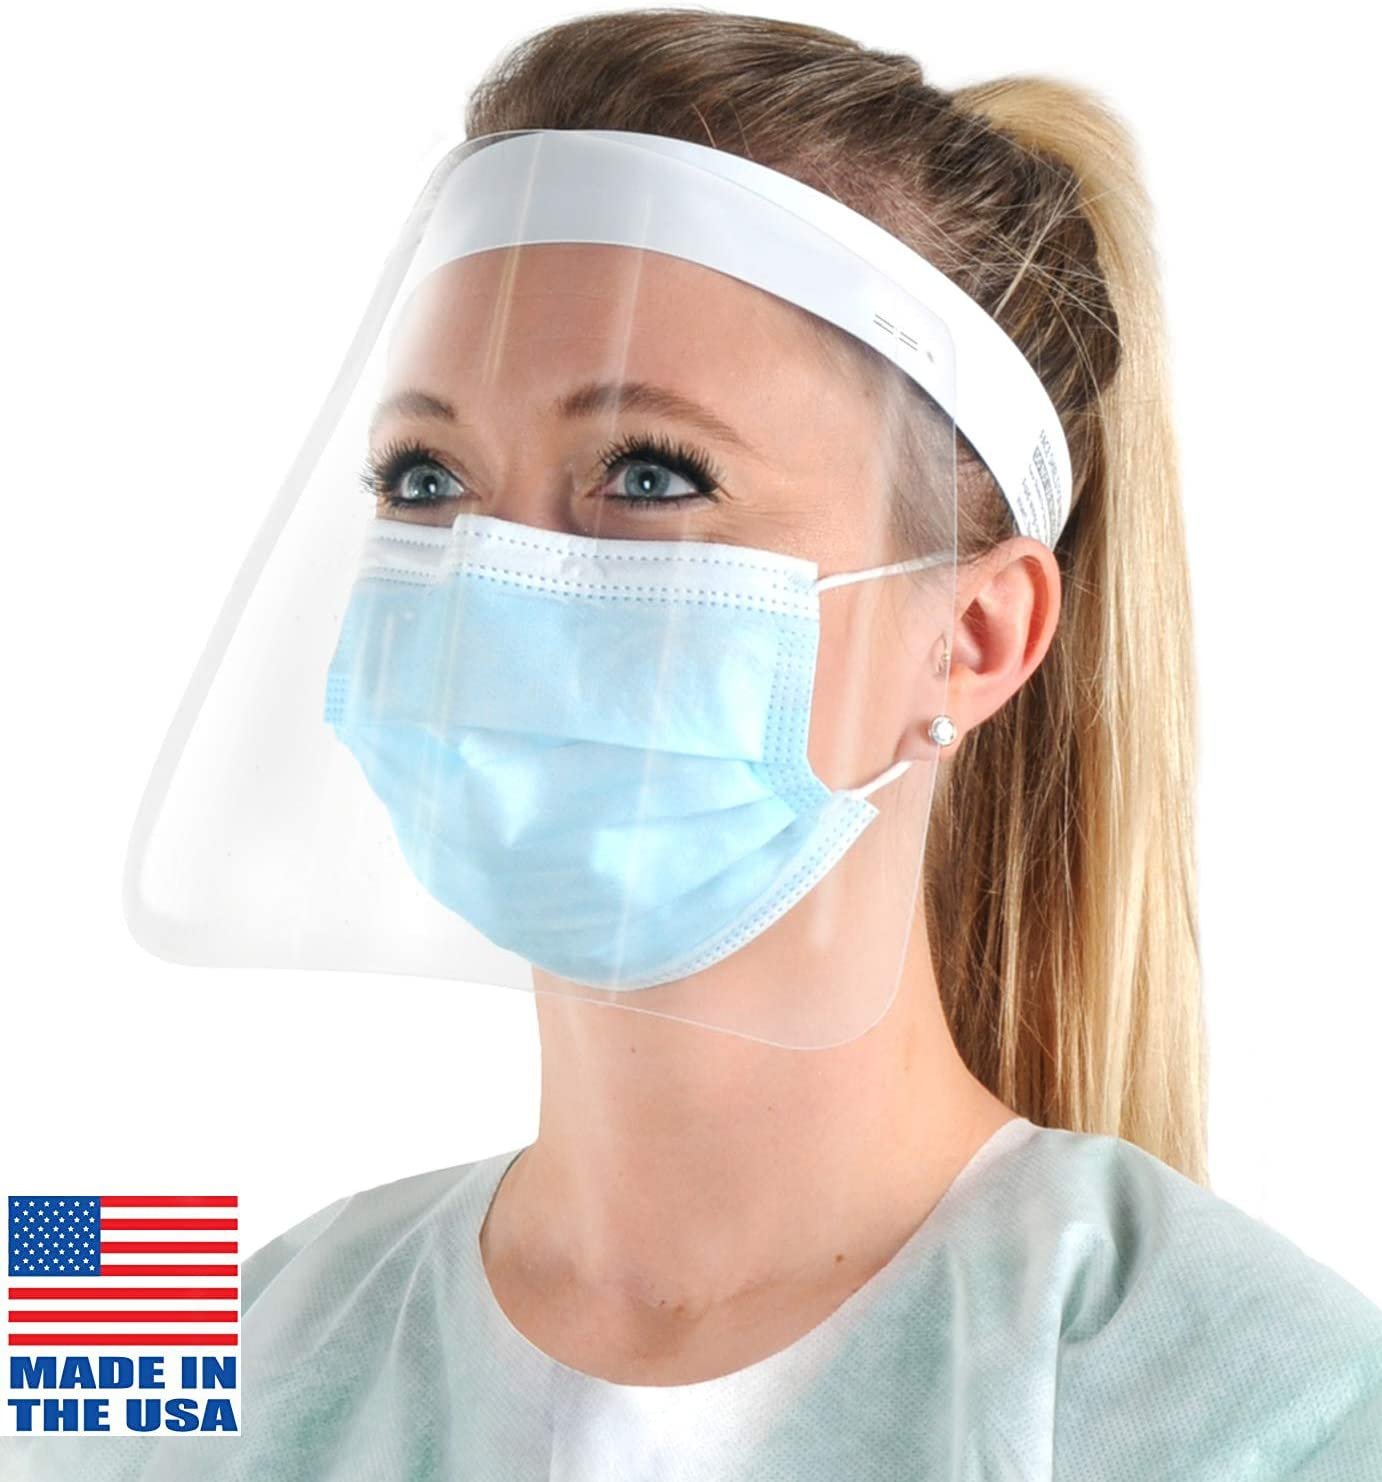 Beistle Shield – 12PCs – Made in the USA with Transparent Lightweight Plastic Safety Visor and Comfortable Adjustable Headband for Eye and Face Protection, 8.25